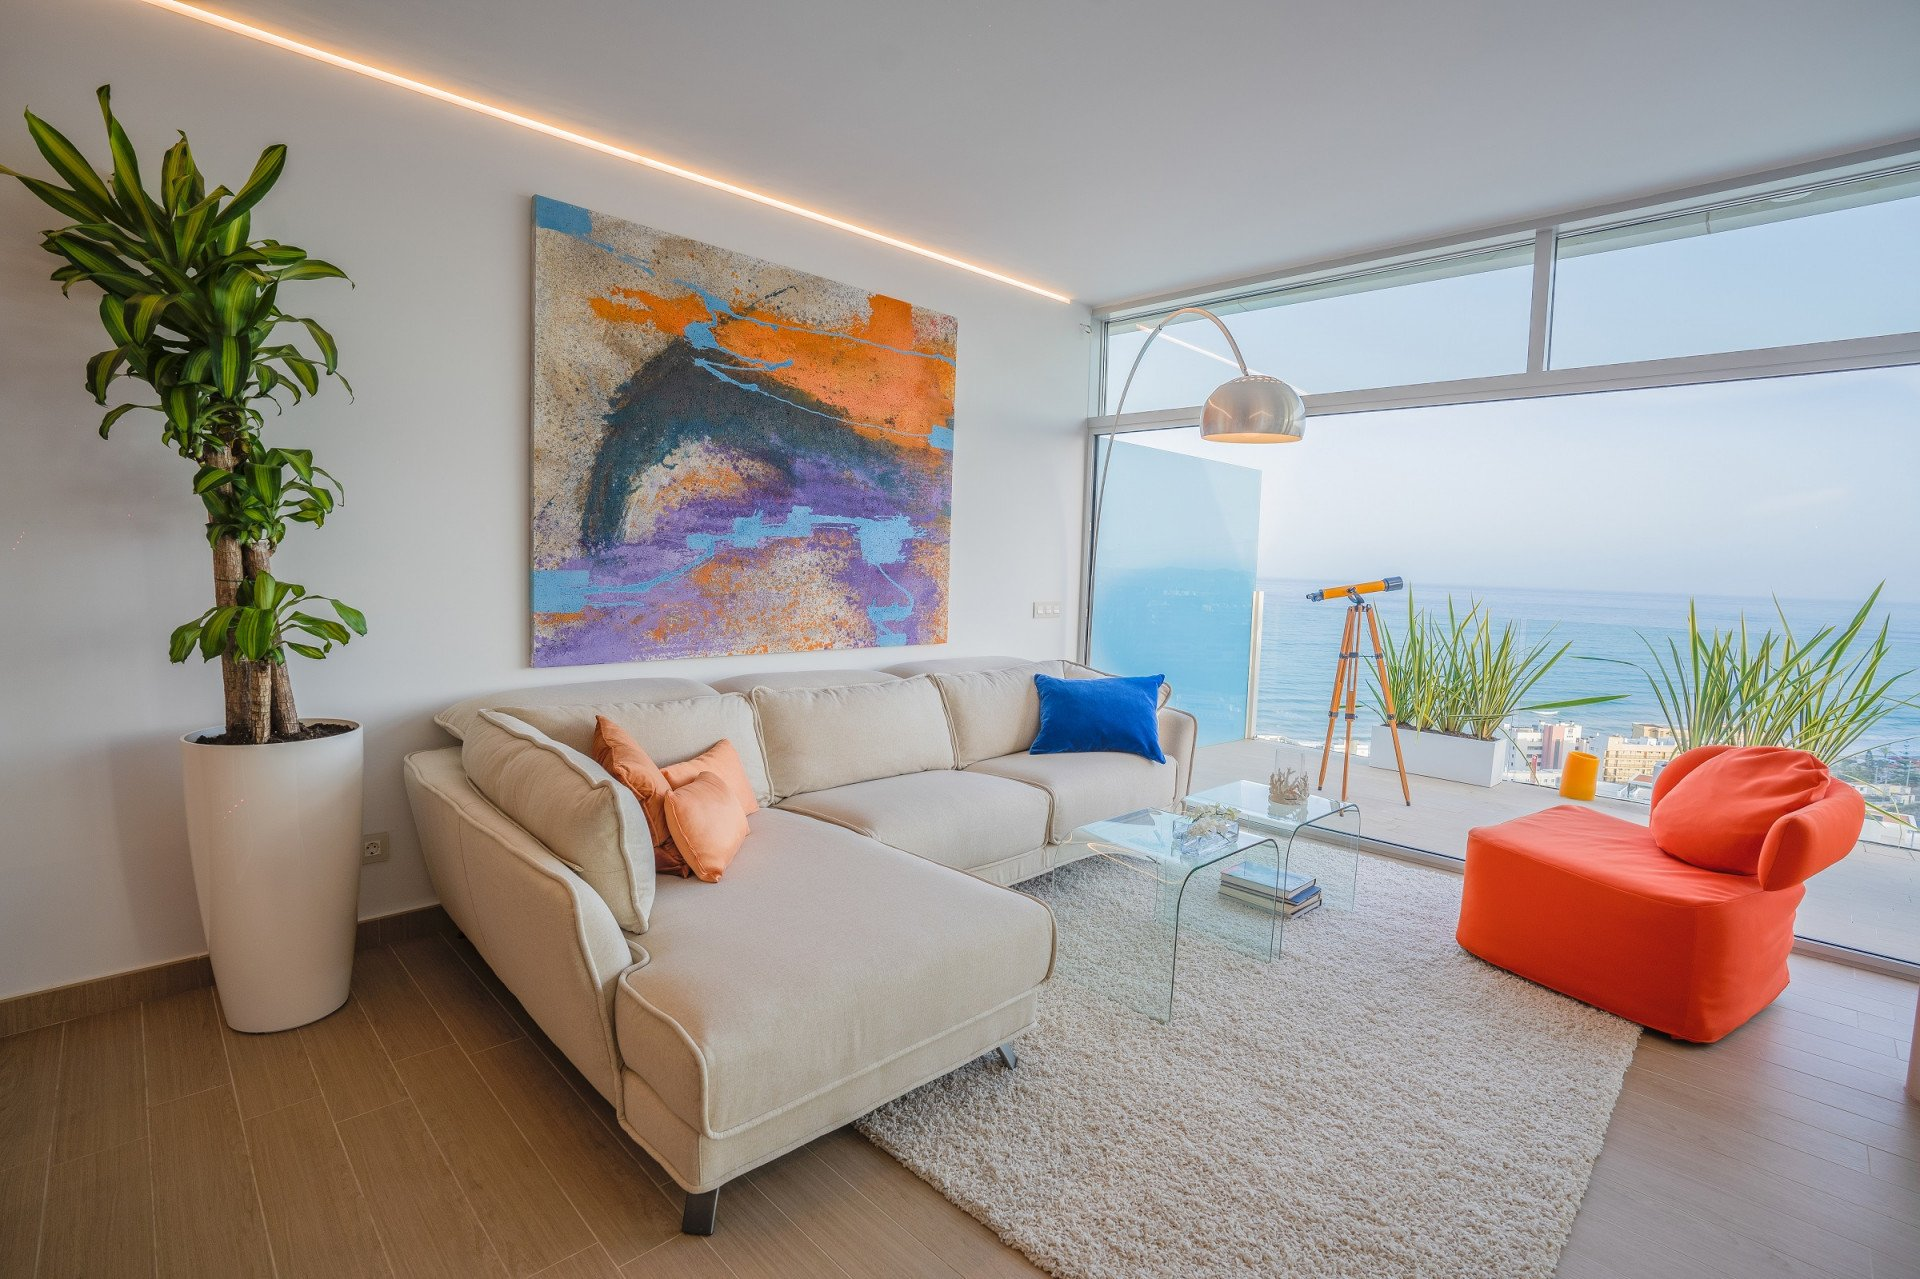 Penthouse in Benalmádena, Andalusia, Spain 1 - 11013979